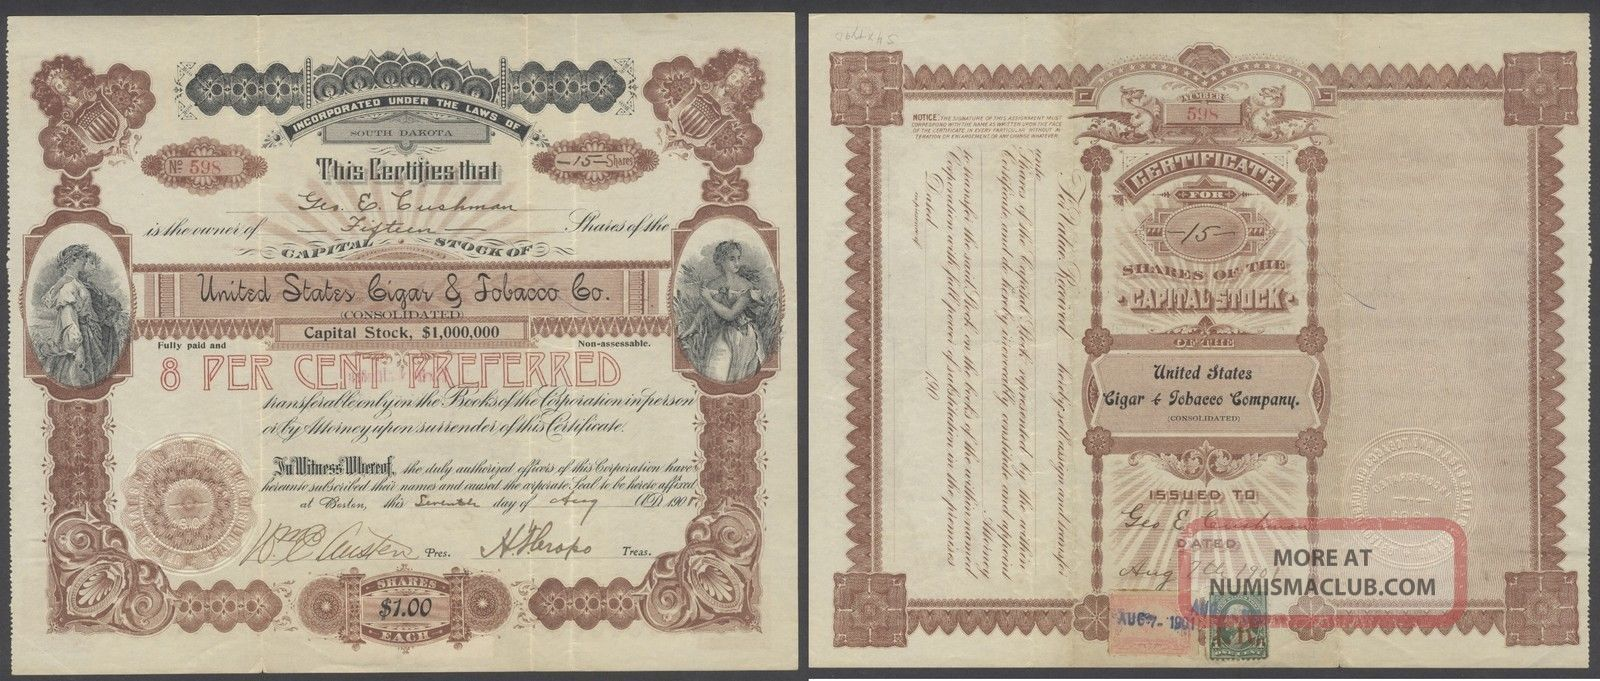 United States 1901 Revenue Stamped Bond United States Cigar & Tobacco Co.  B1584 World photo